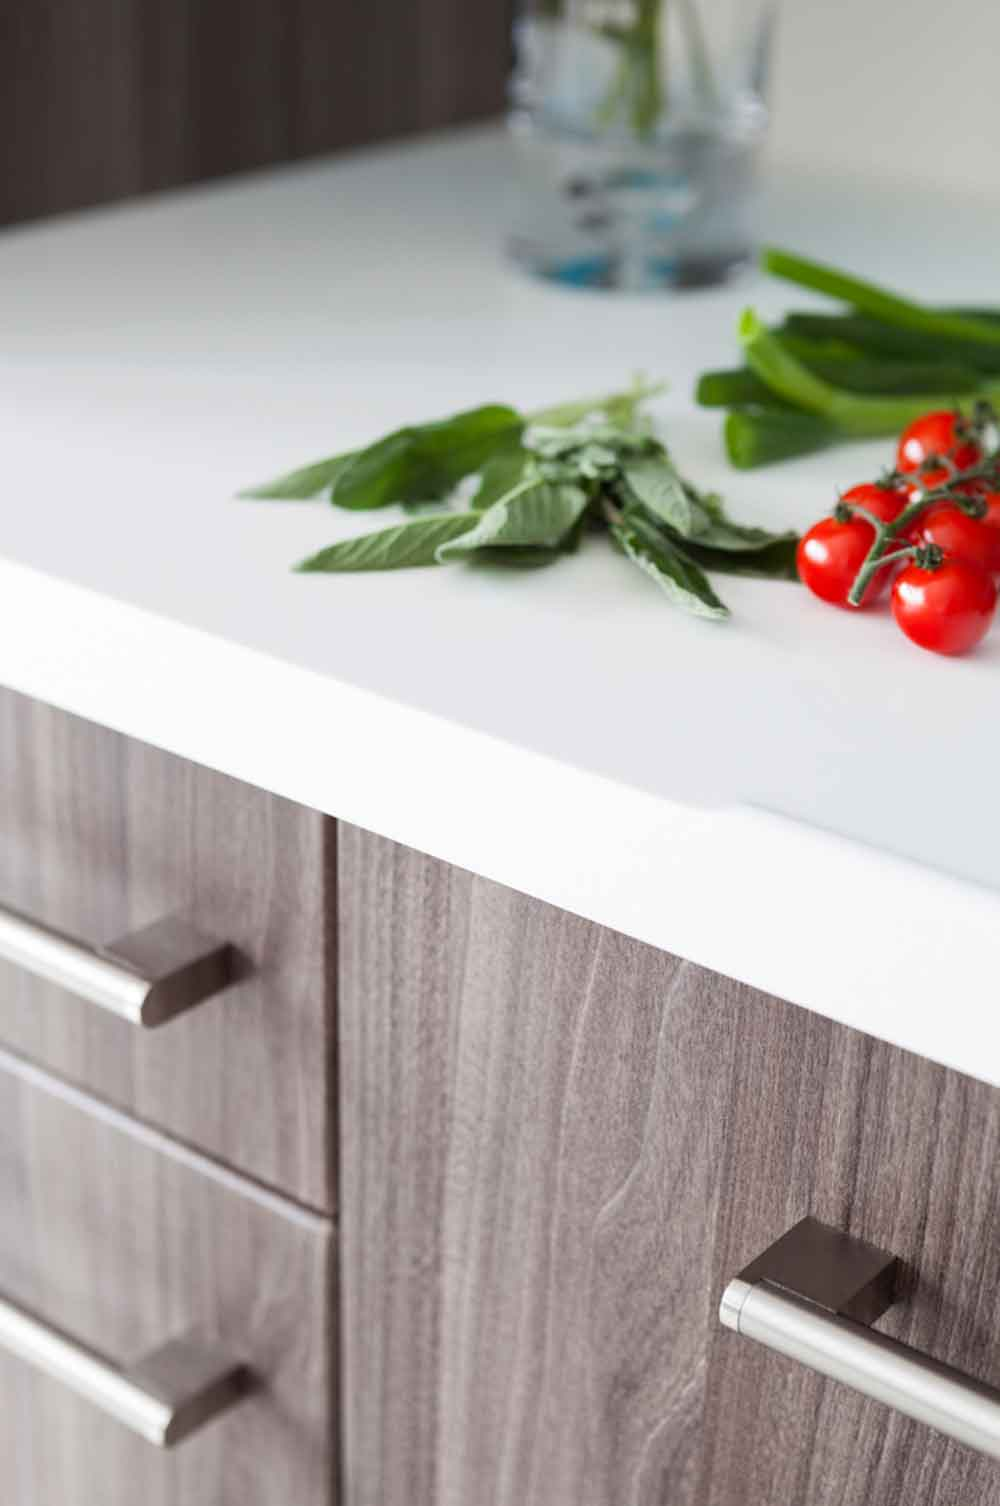 Detailed close up shot of Kitchen Surface with Tomatoes